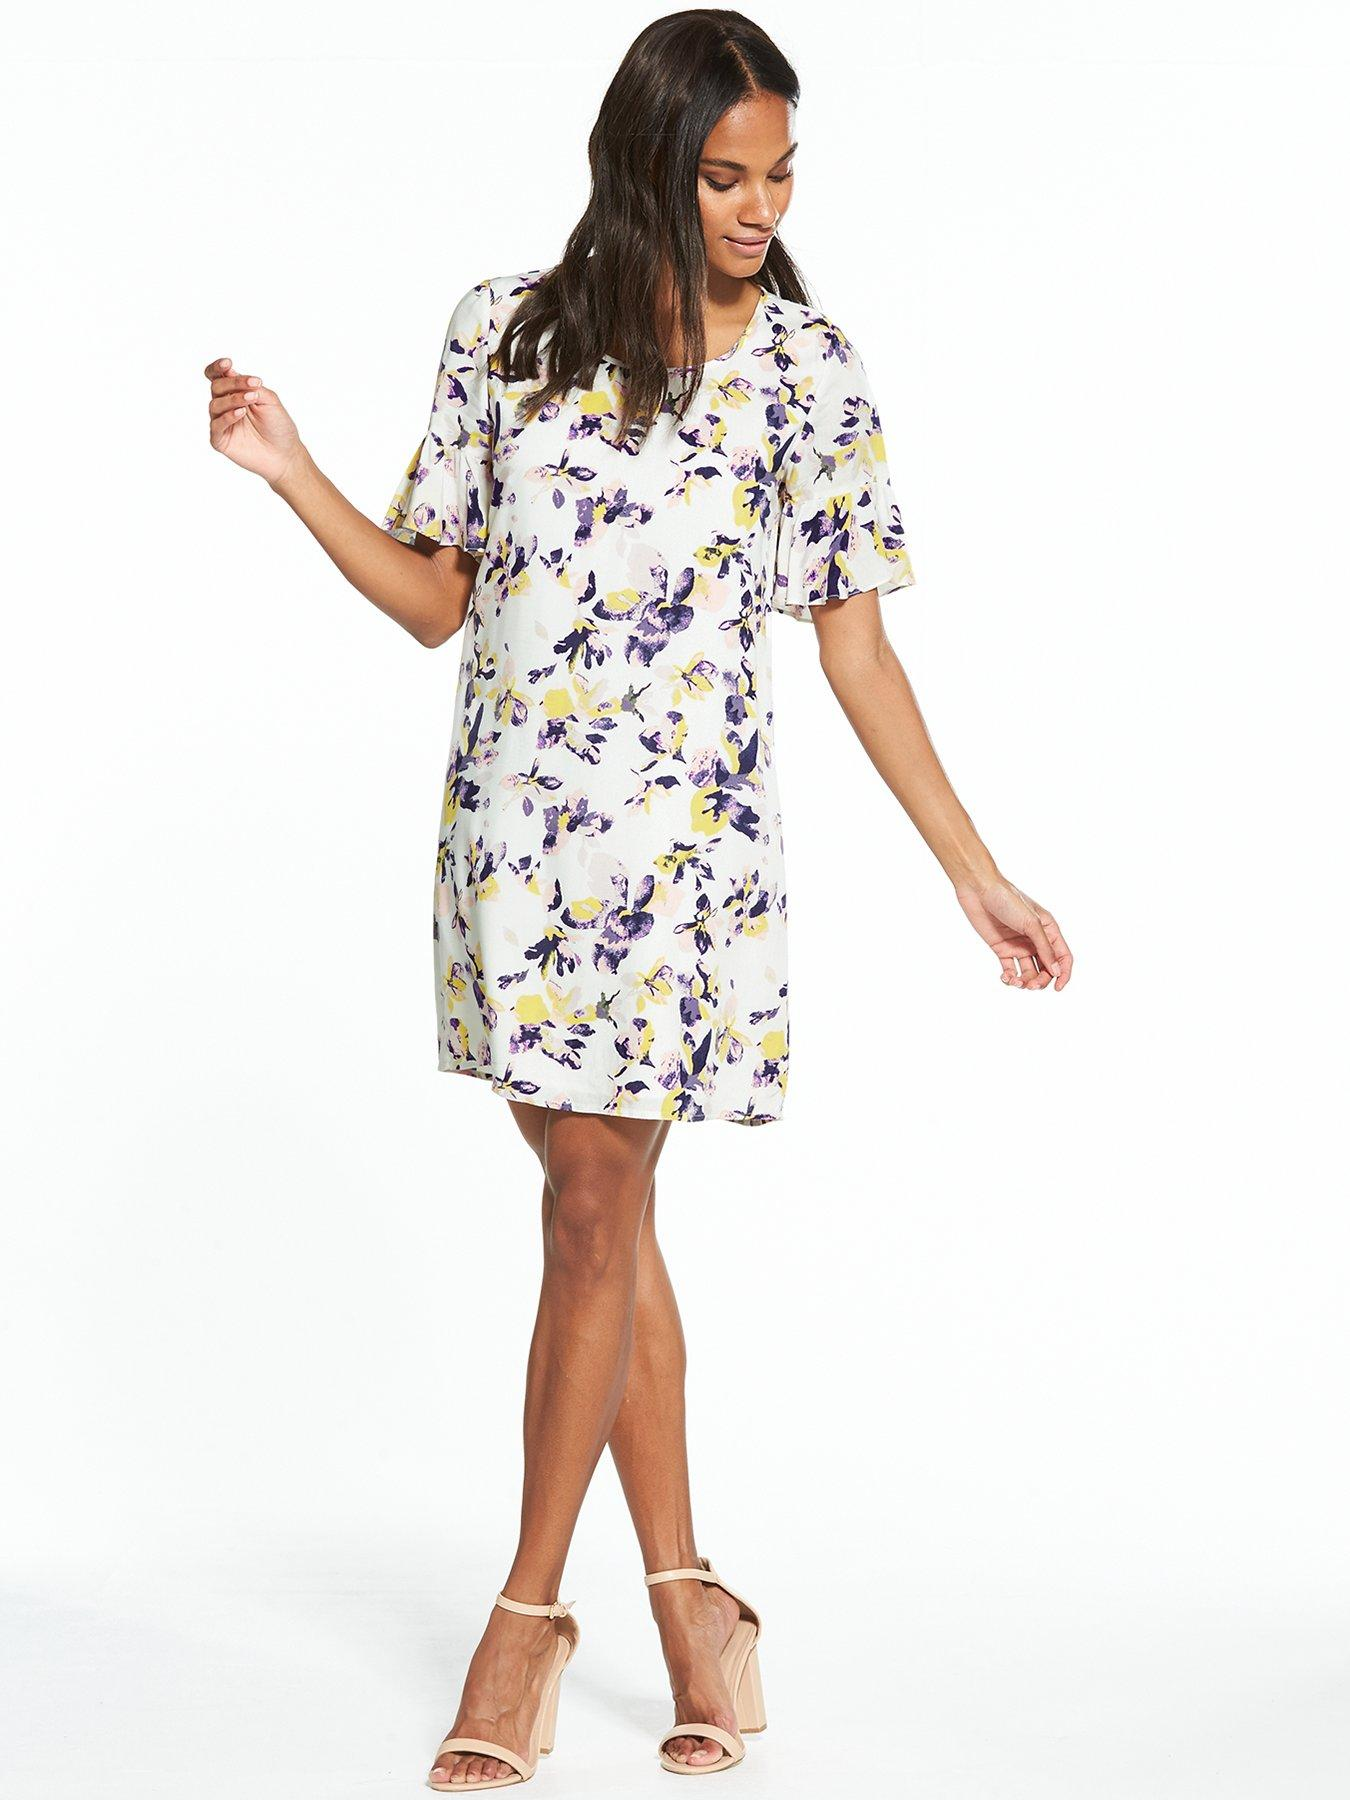 VILA-yellow-dress-with-floral-painted-print-by-Patrick-Moriarty